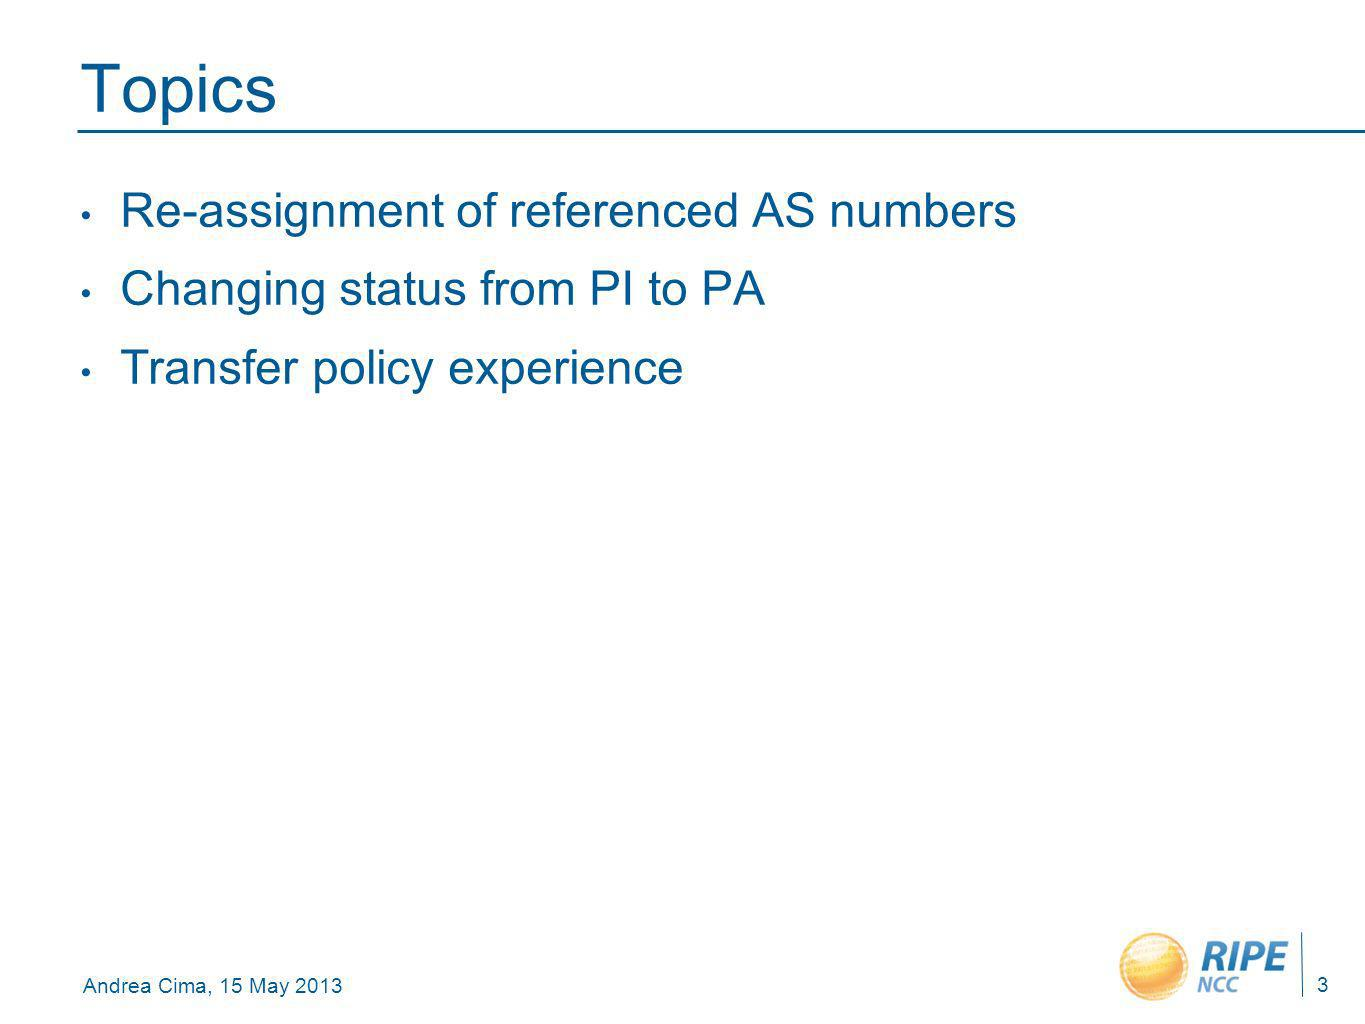 Andrea Cima, 15 May 2013 Topics Re-assignment of referenced AS numbers Changing status from PI to PA Transfer policy experience 3